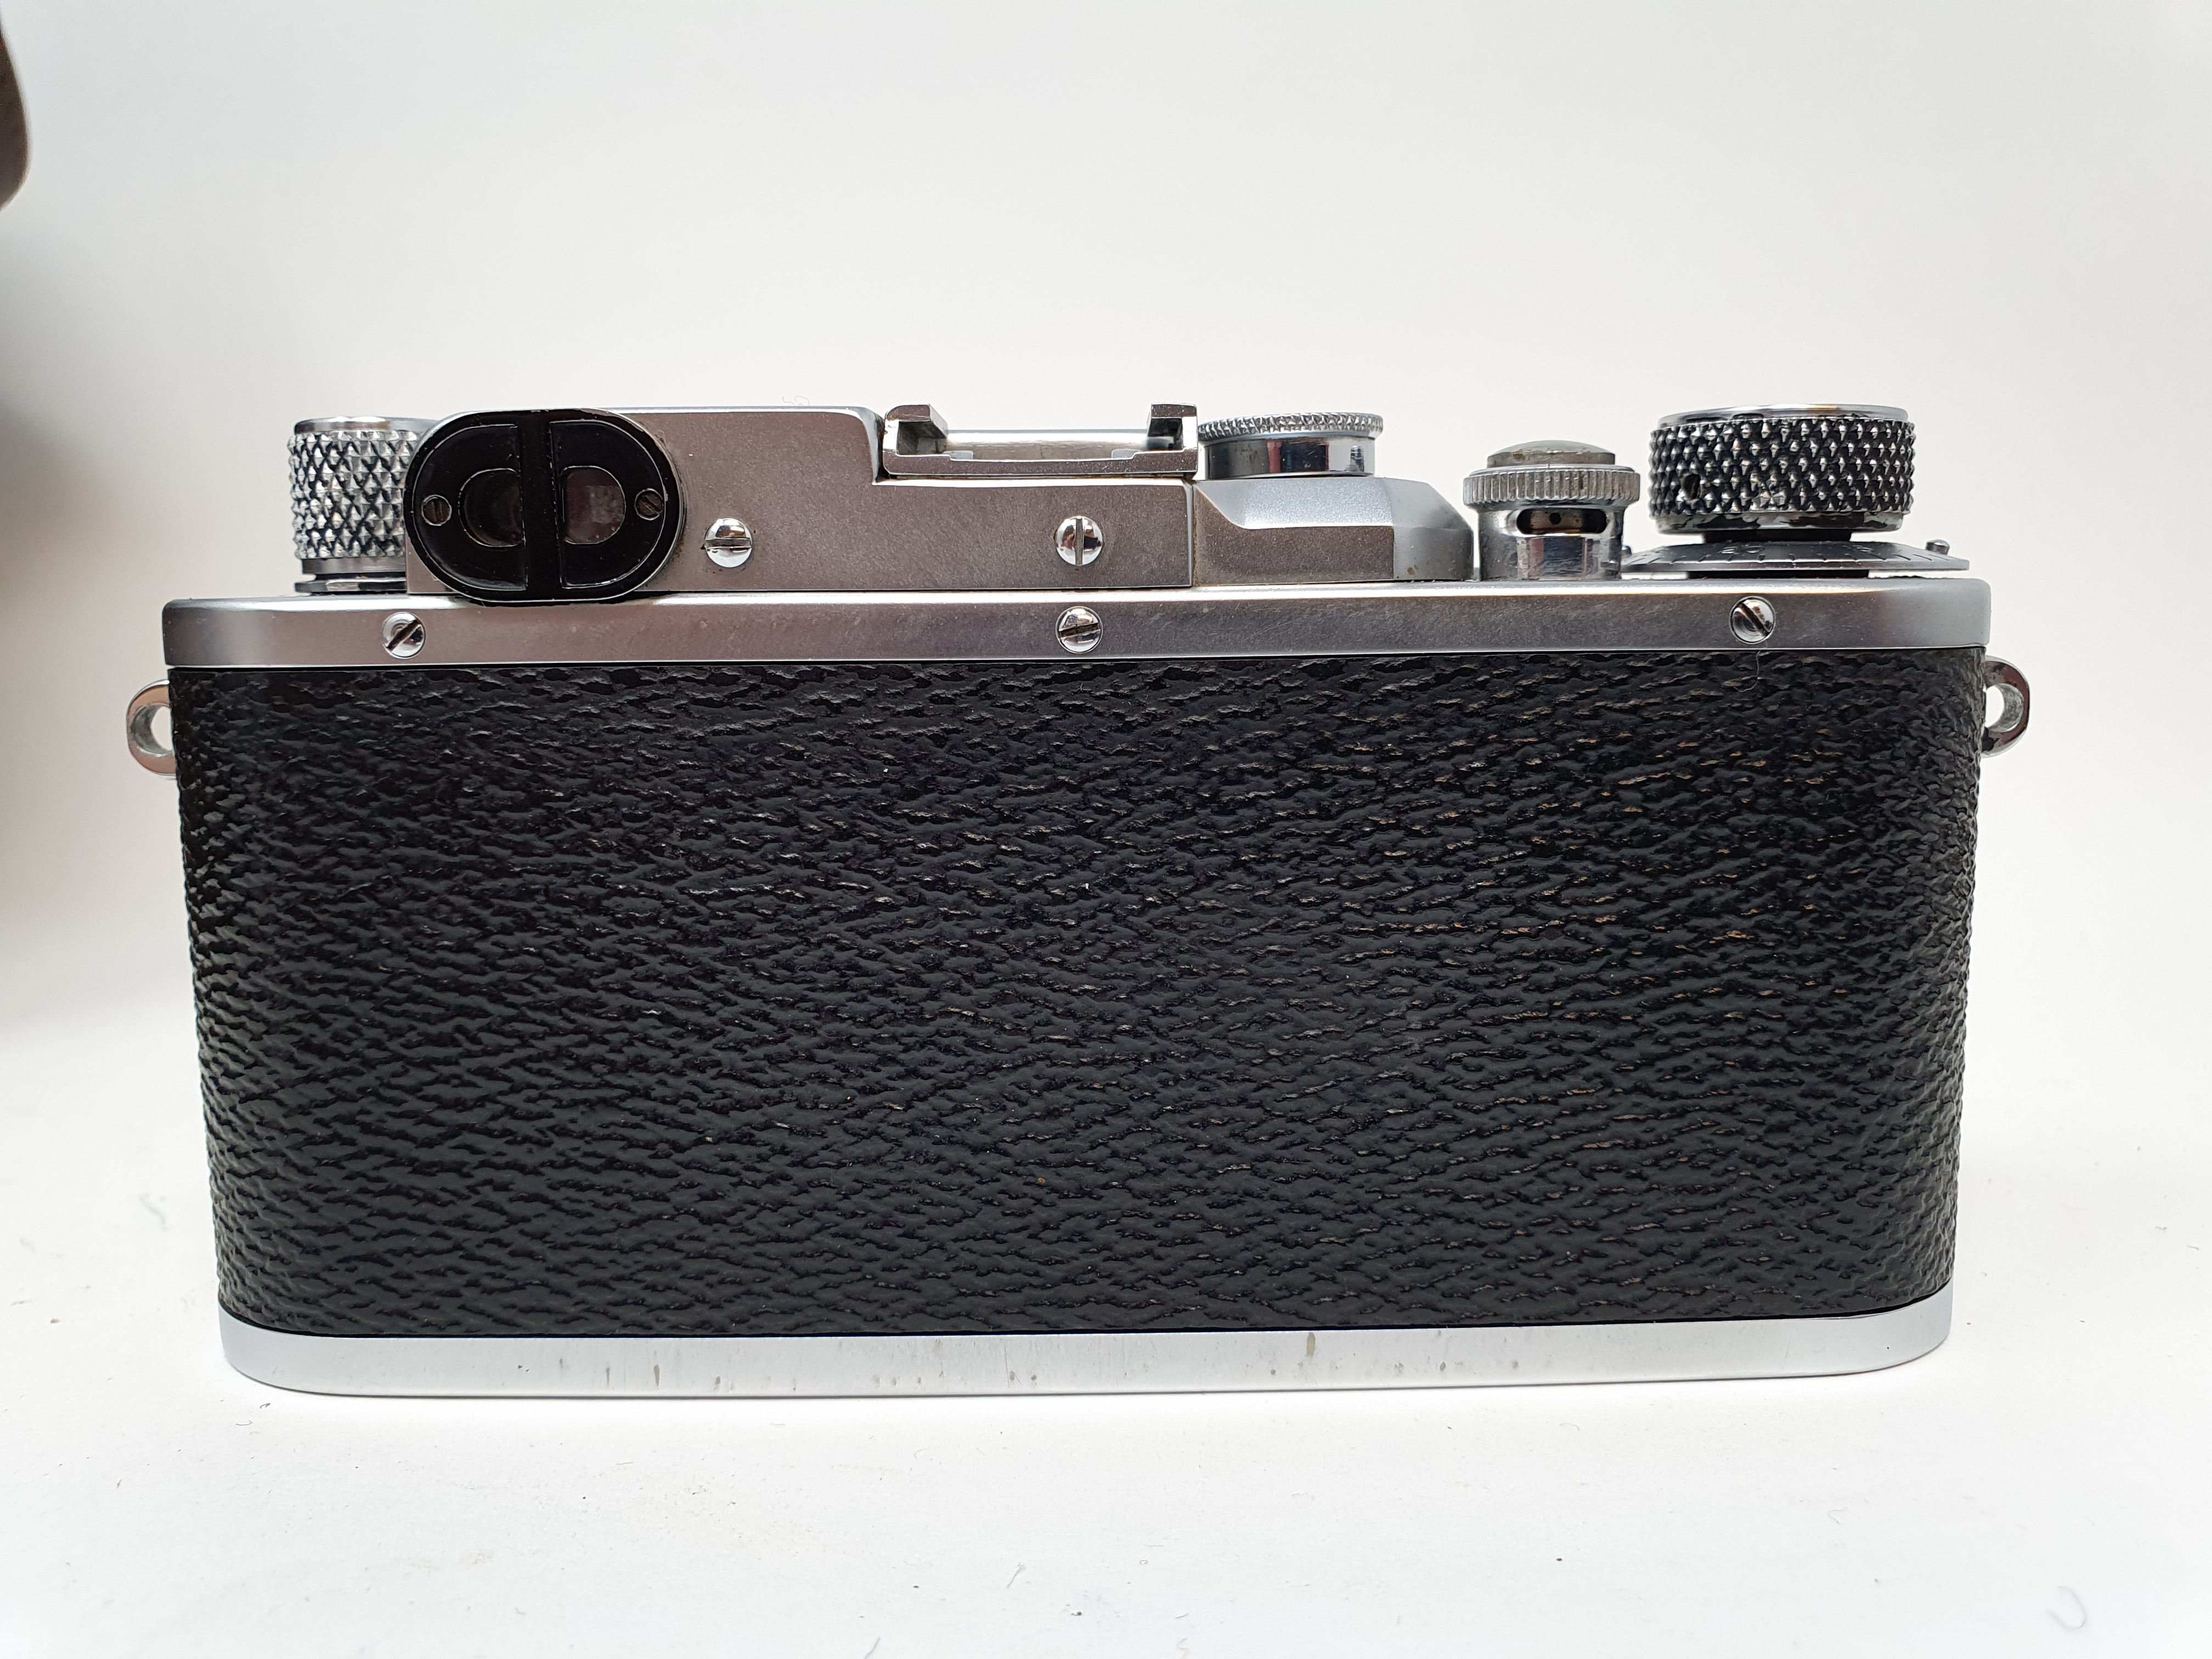 A Reid & Sigrist ltd camera, serial number P2750, with leather outer case, lens, and accessories - Image 4 of 7